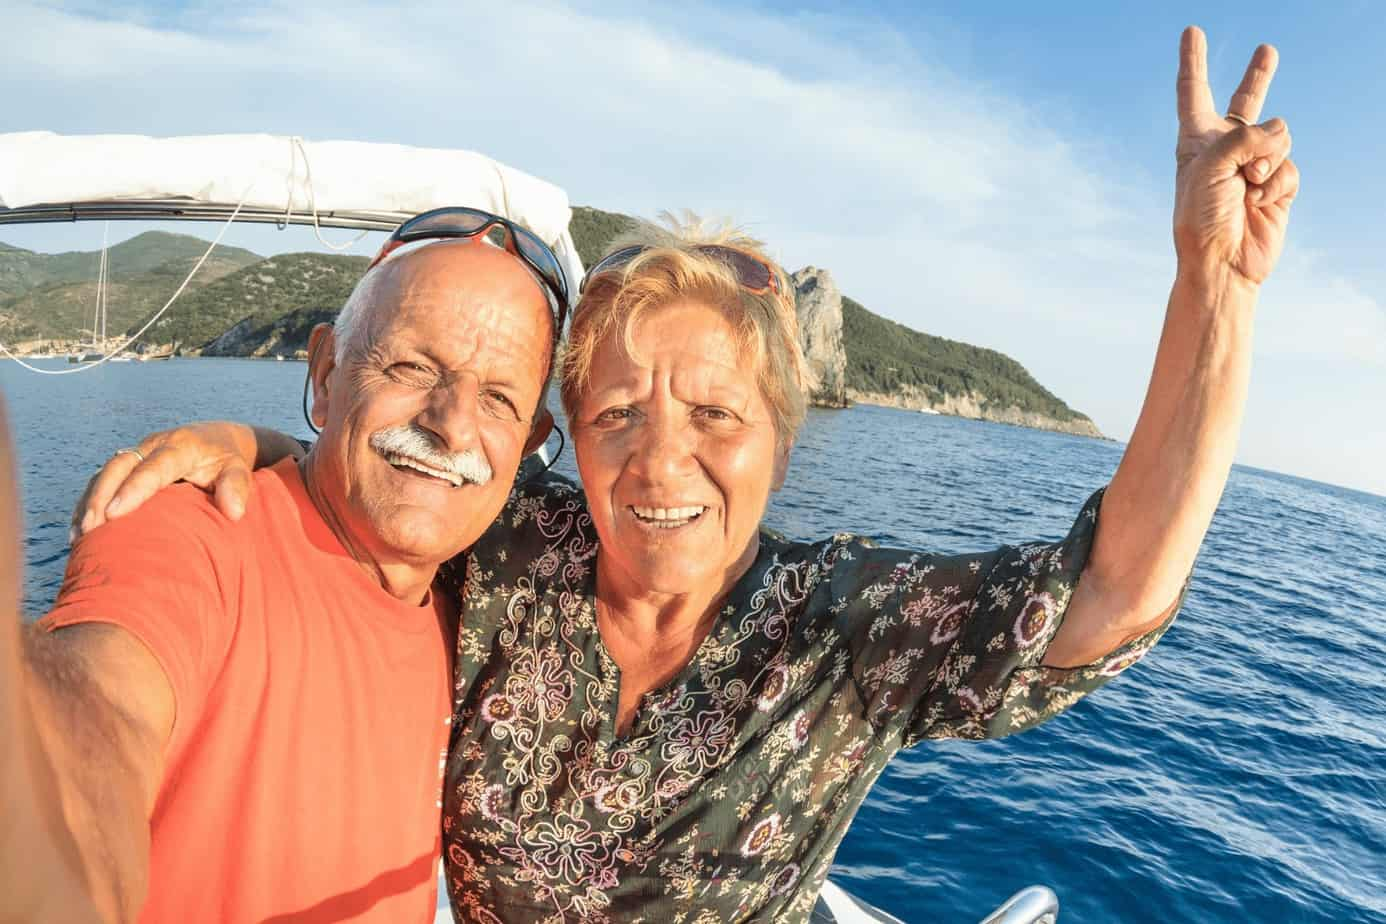 a selfie photo of a senior couple while riding a boat